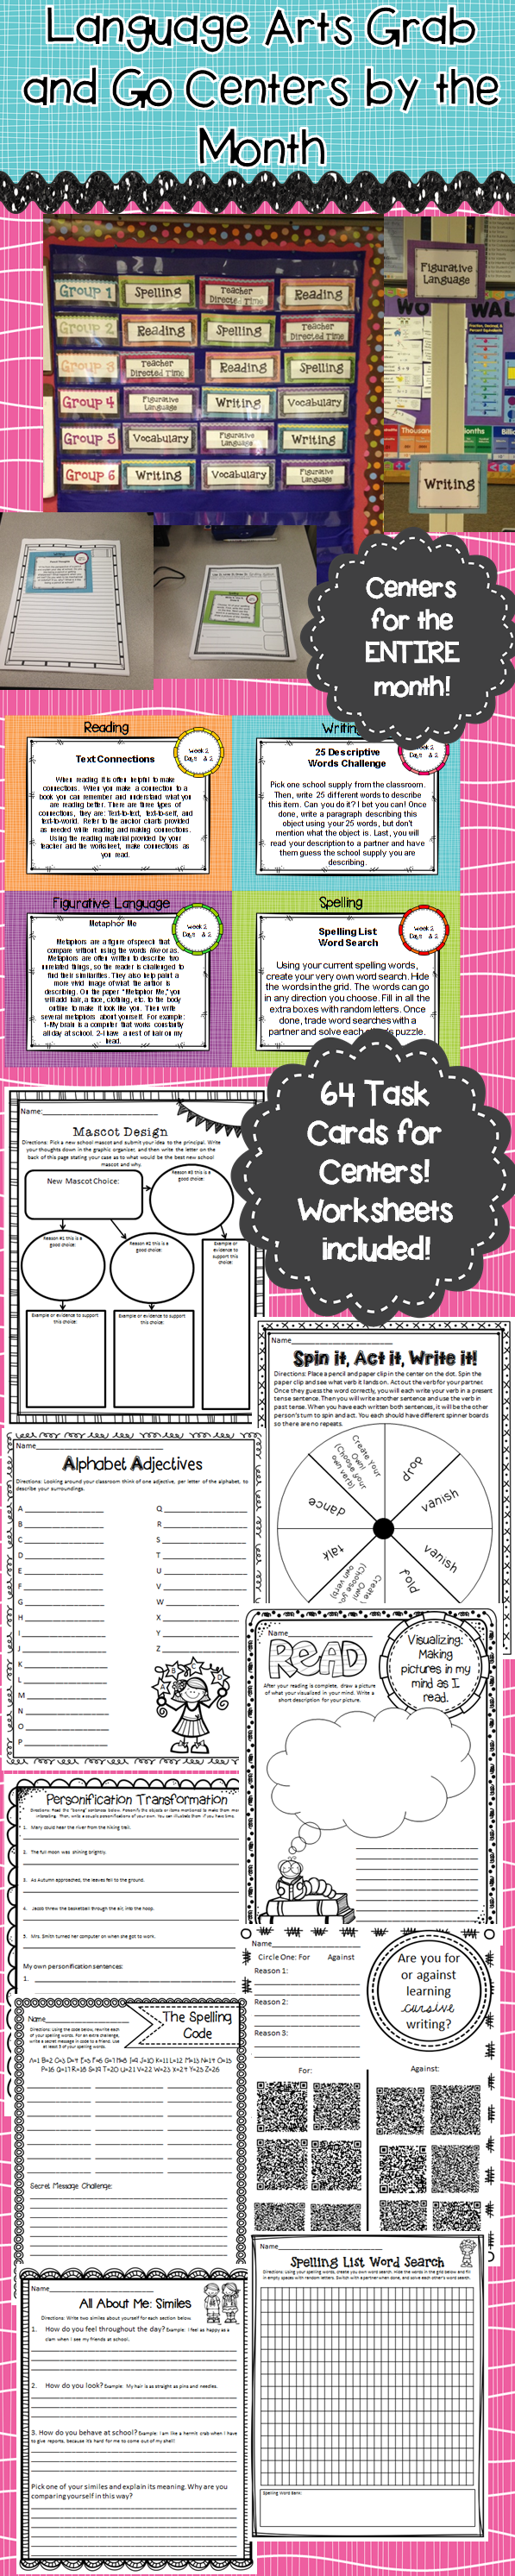 worksheet 4th Grade English Language Arts Worksheets literacy centers 3rd 4th 5th 6th grade back to school language arts for the whole month 3 6 grades september